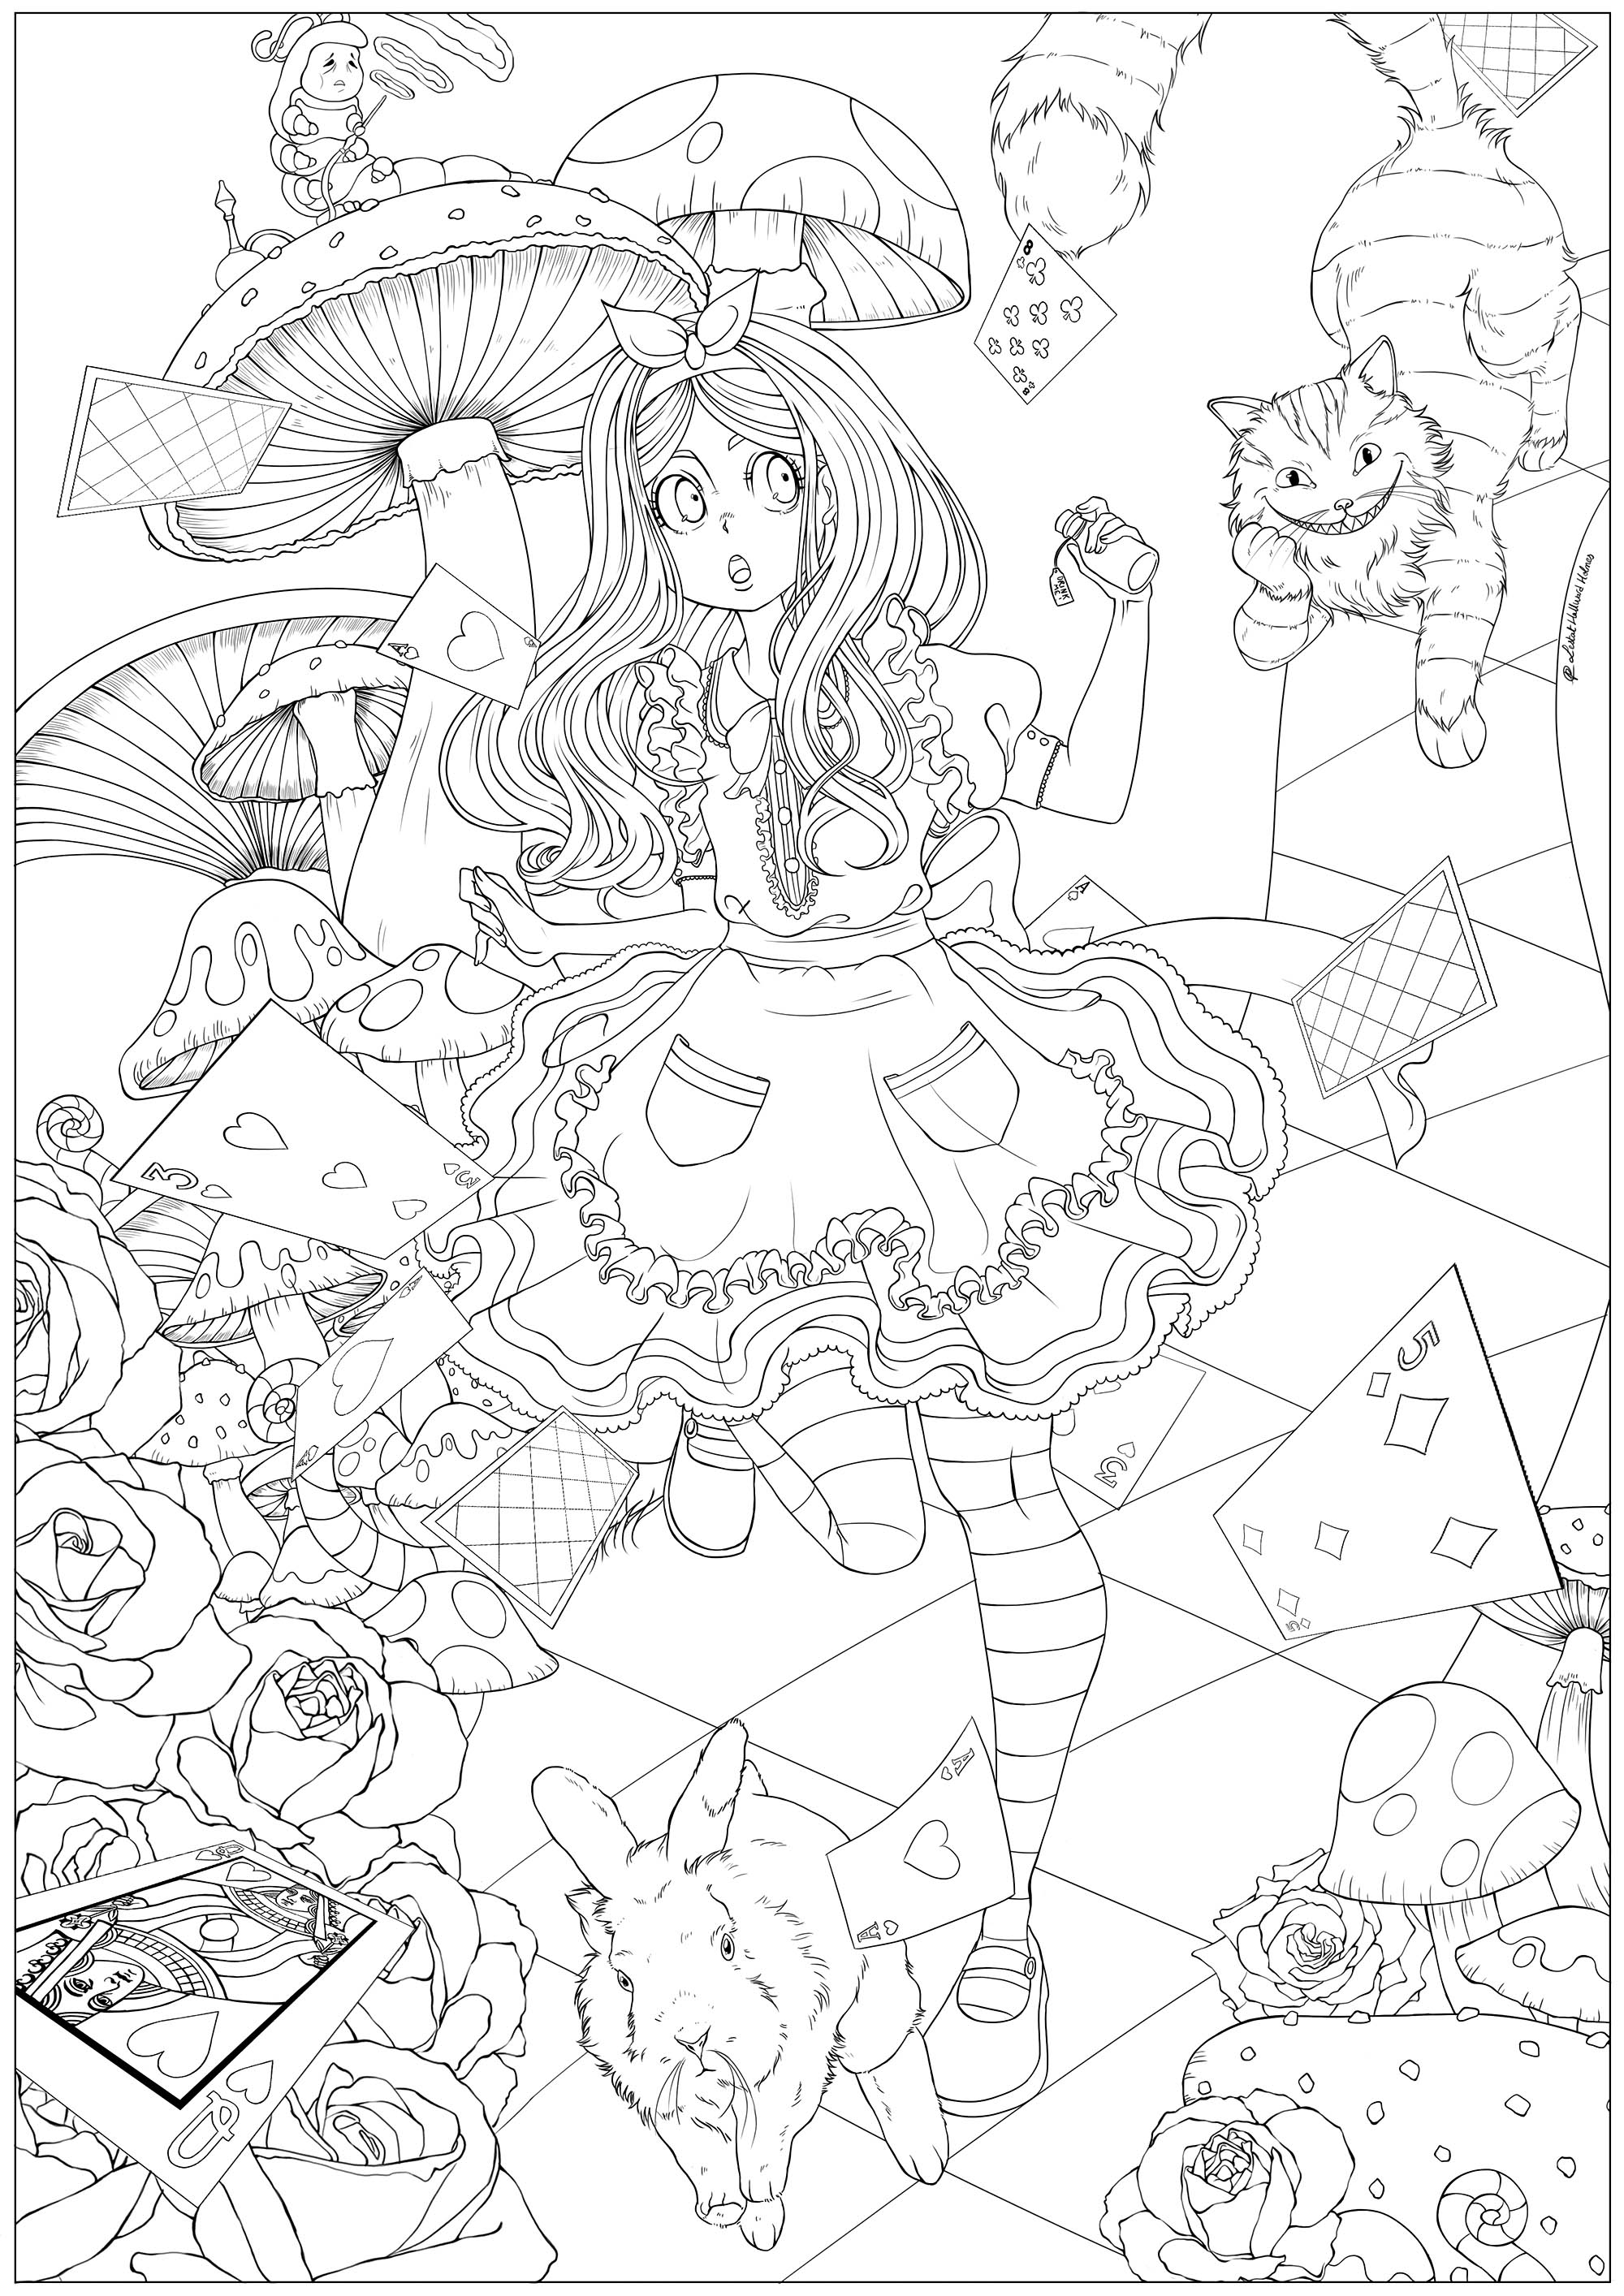 Beautiful Tales coloring page to print and color